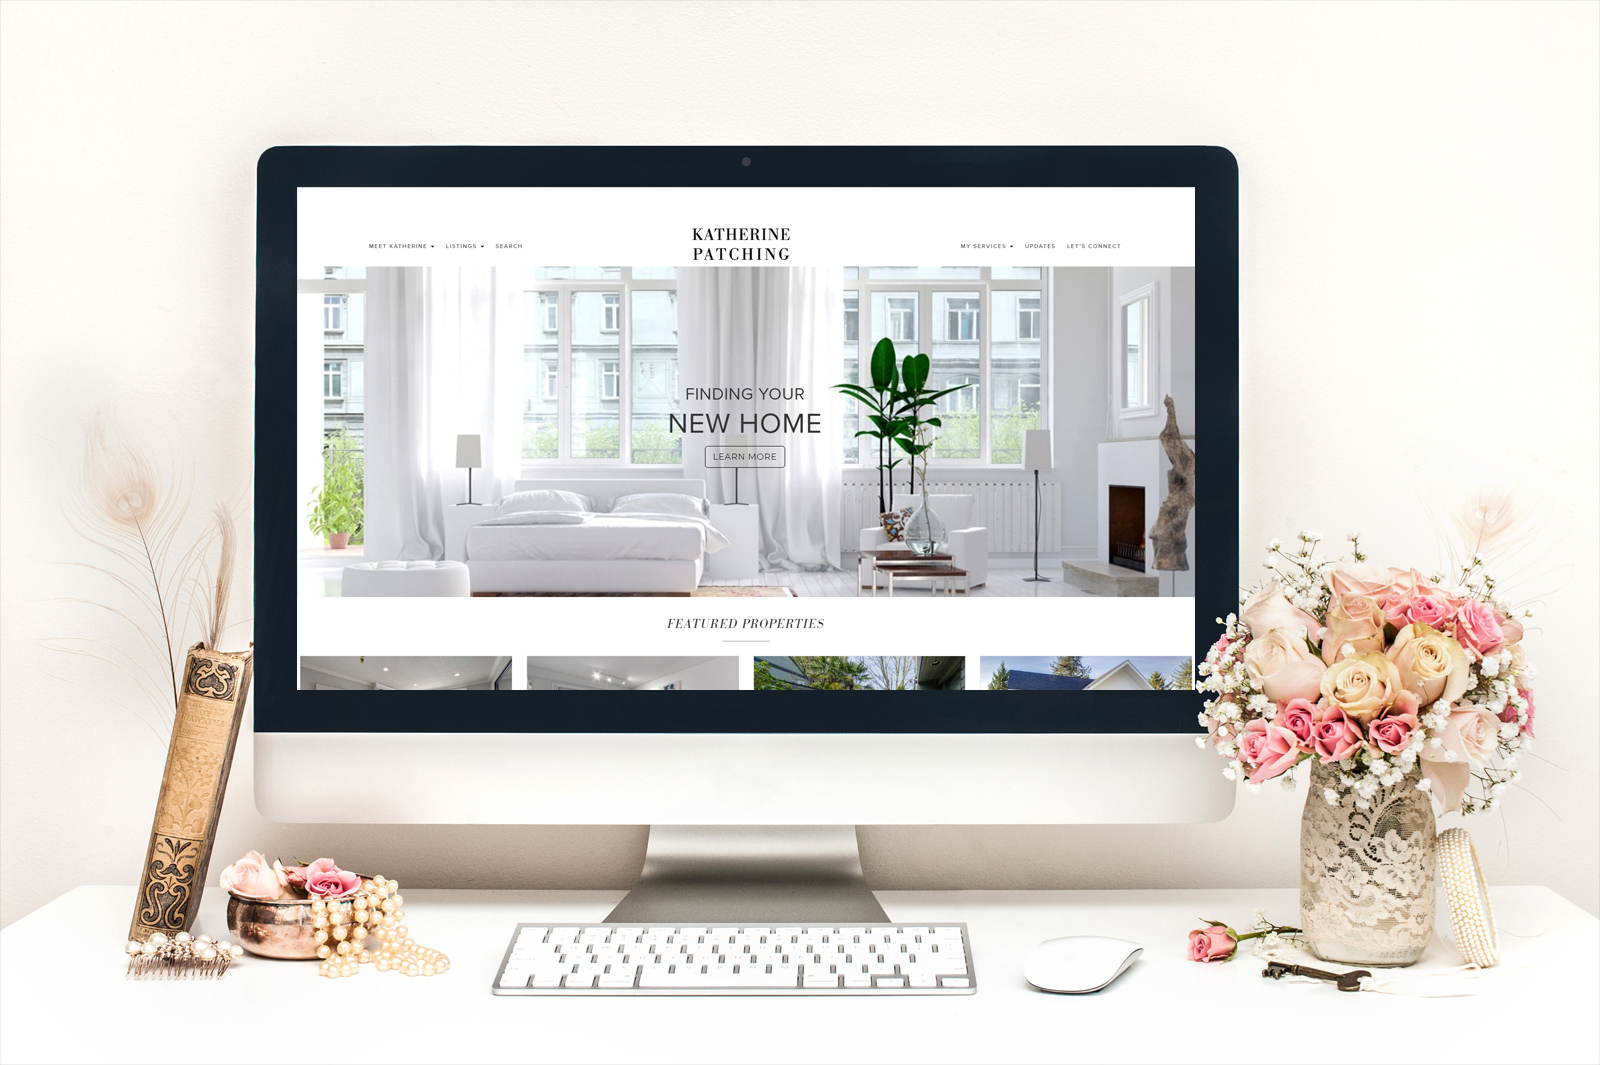 Katherine Patching's Real Estate Website with Design Customization by RealtyNinja